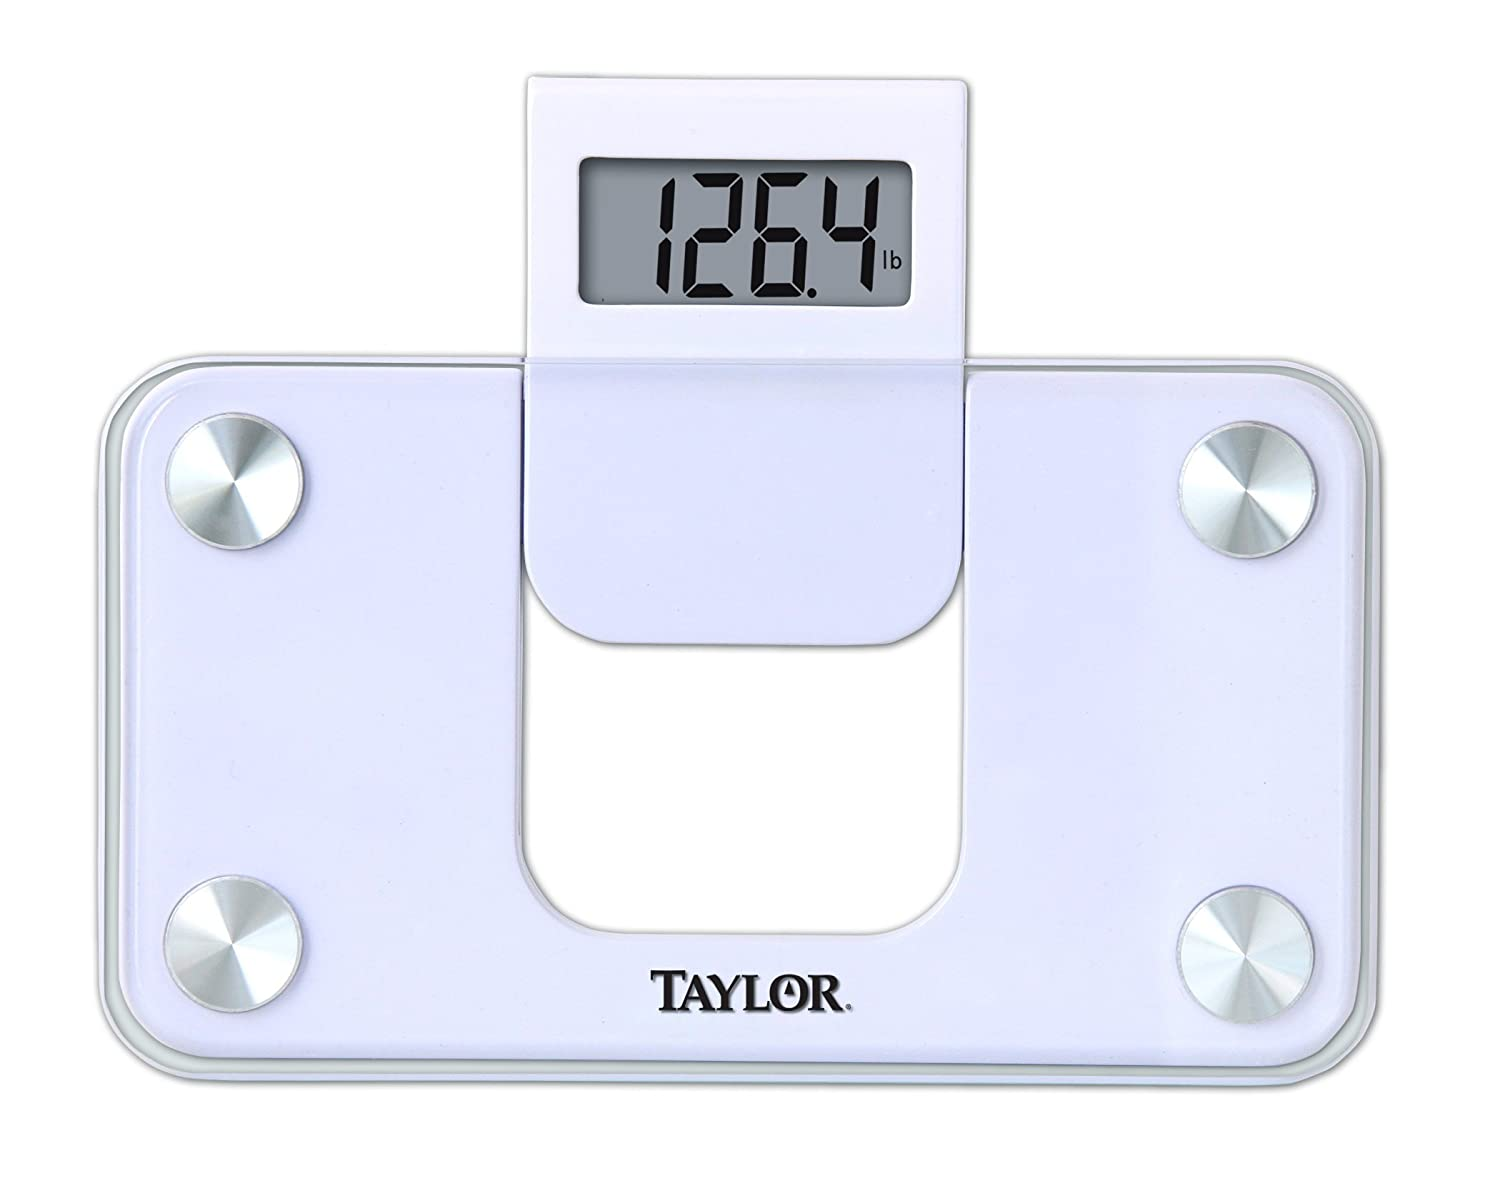 Best digital bathroom scale 28 images uk union for Best bathrooms scales